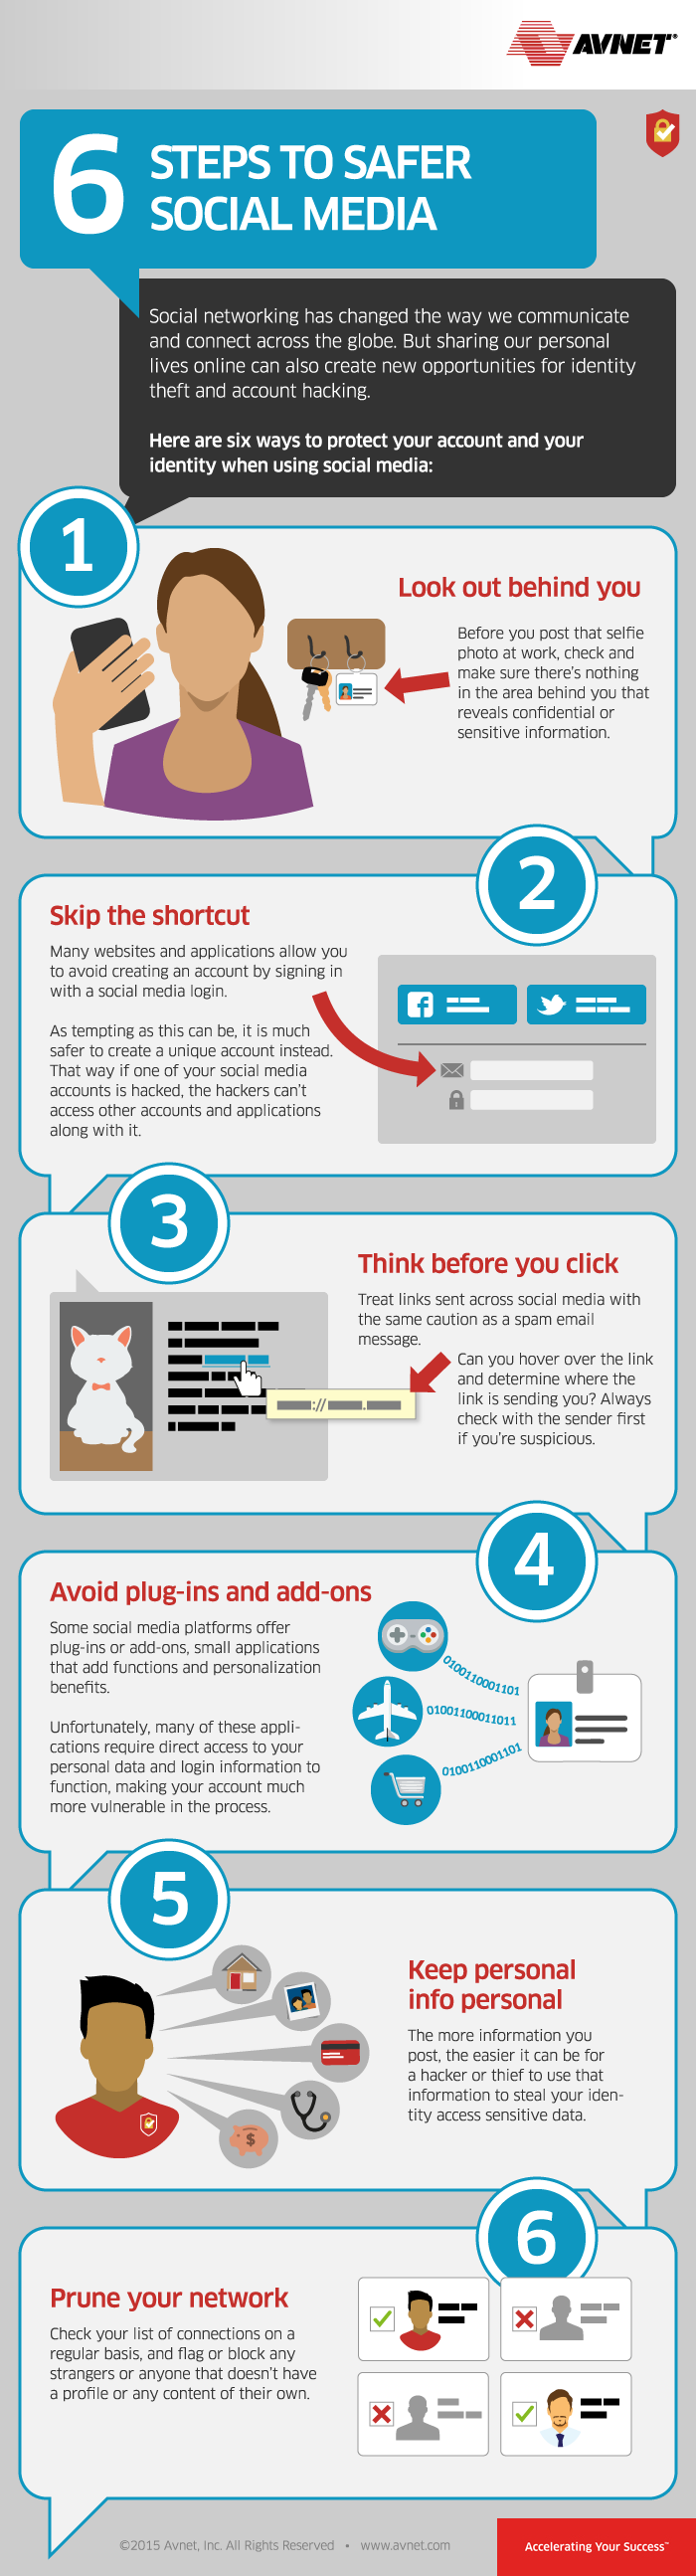 Social Media and Internet Safety Tips: 6 Steps to Safer #SocialMedia - #infographic